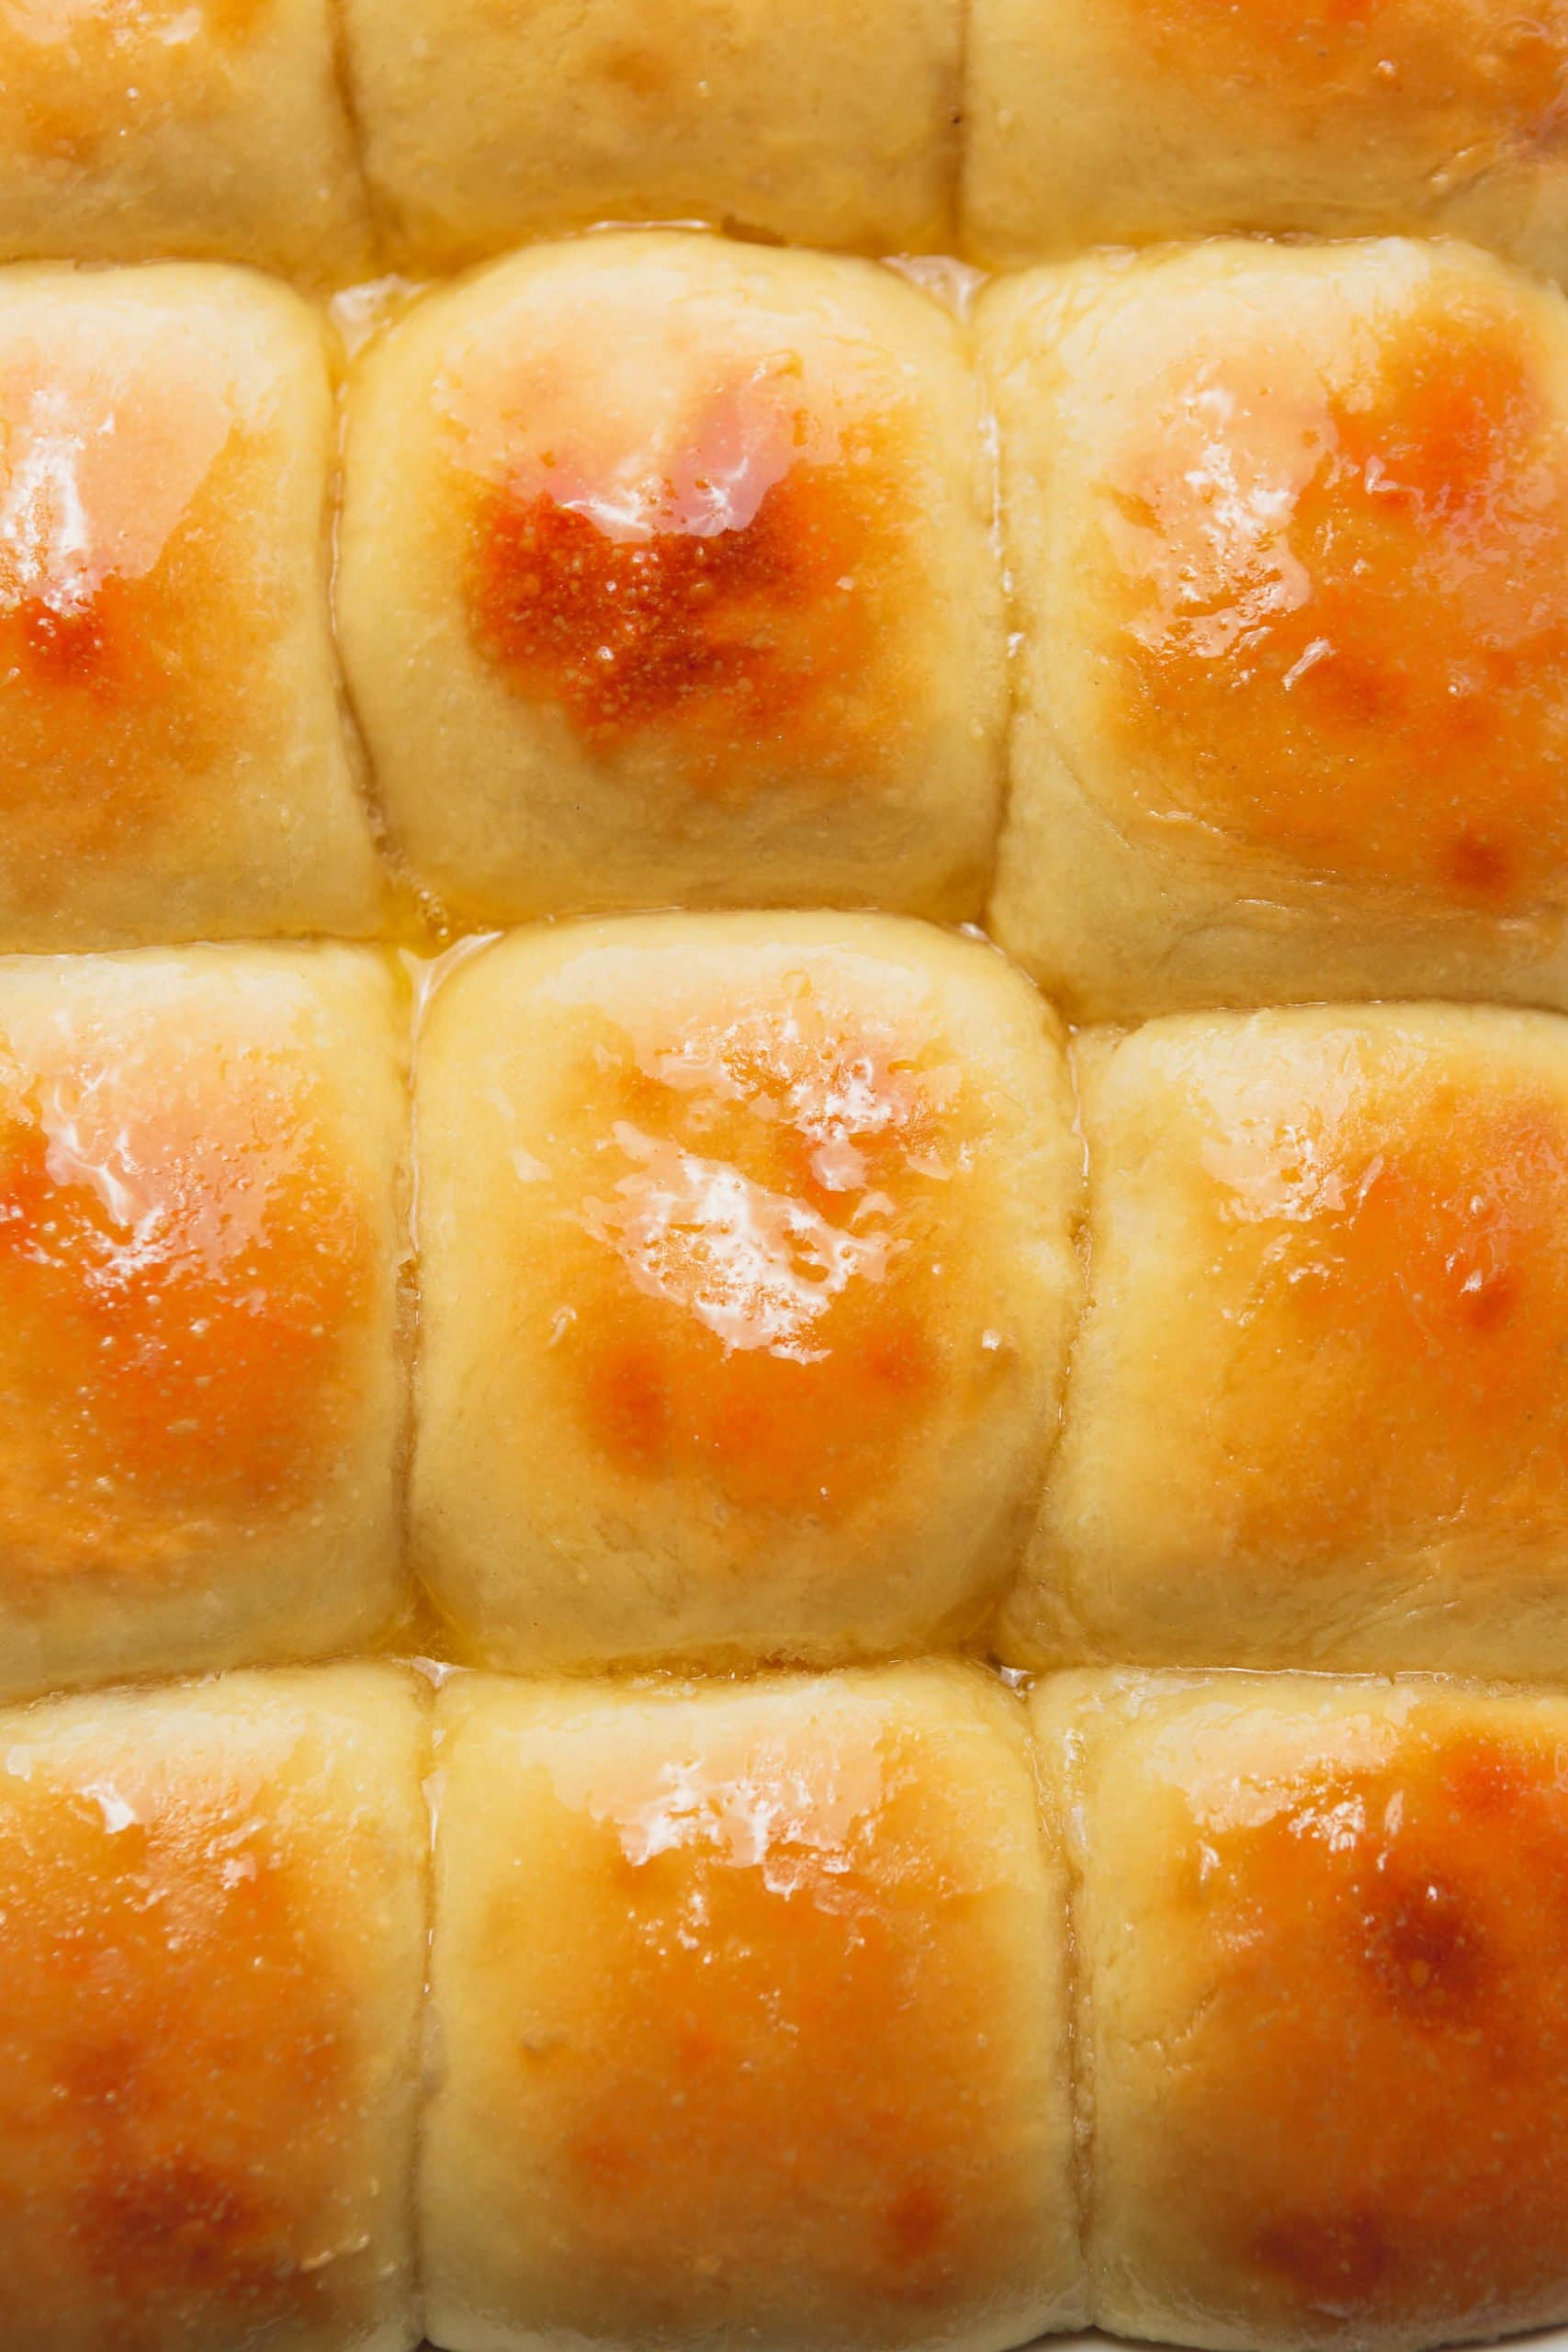 Picture of a pan filled with well-baked Hawaiian rolls topped with melted butter